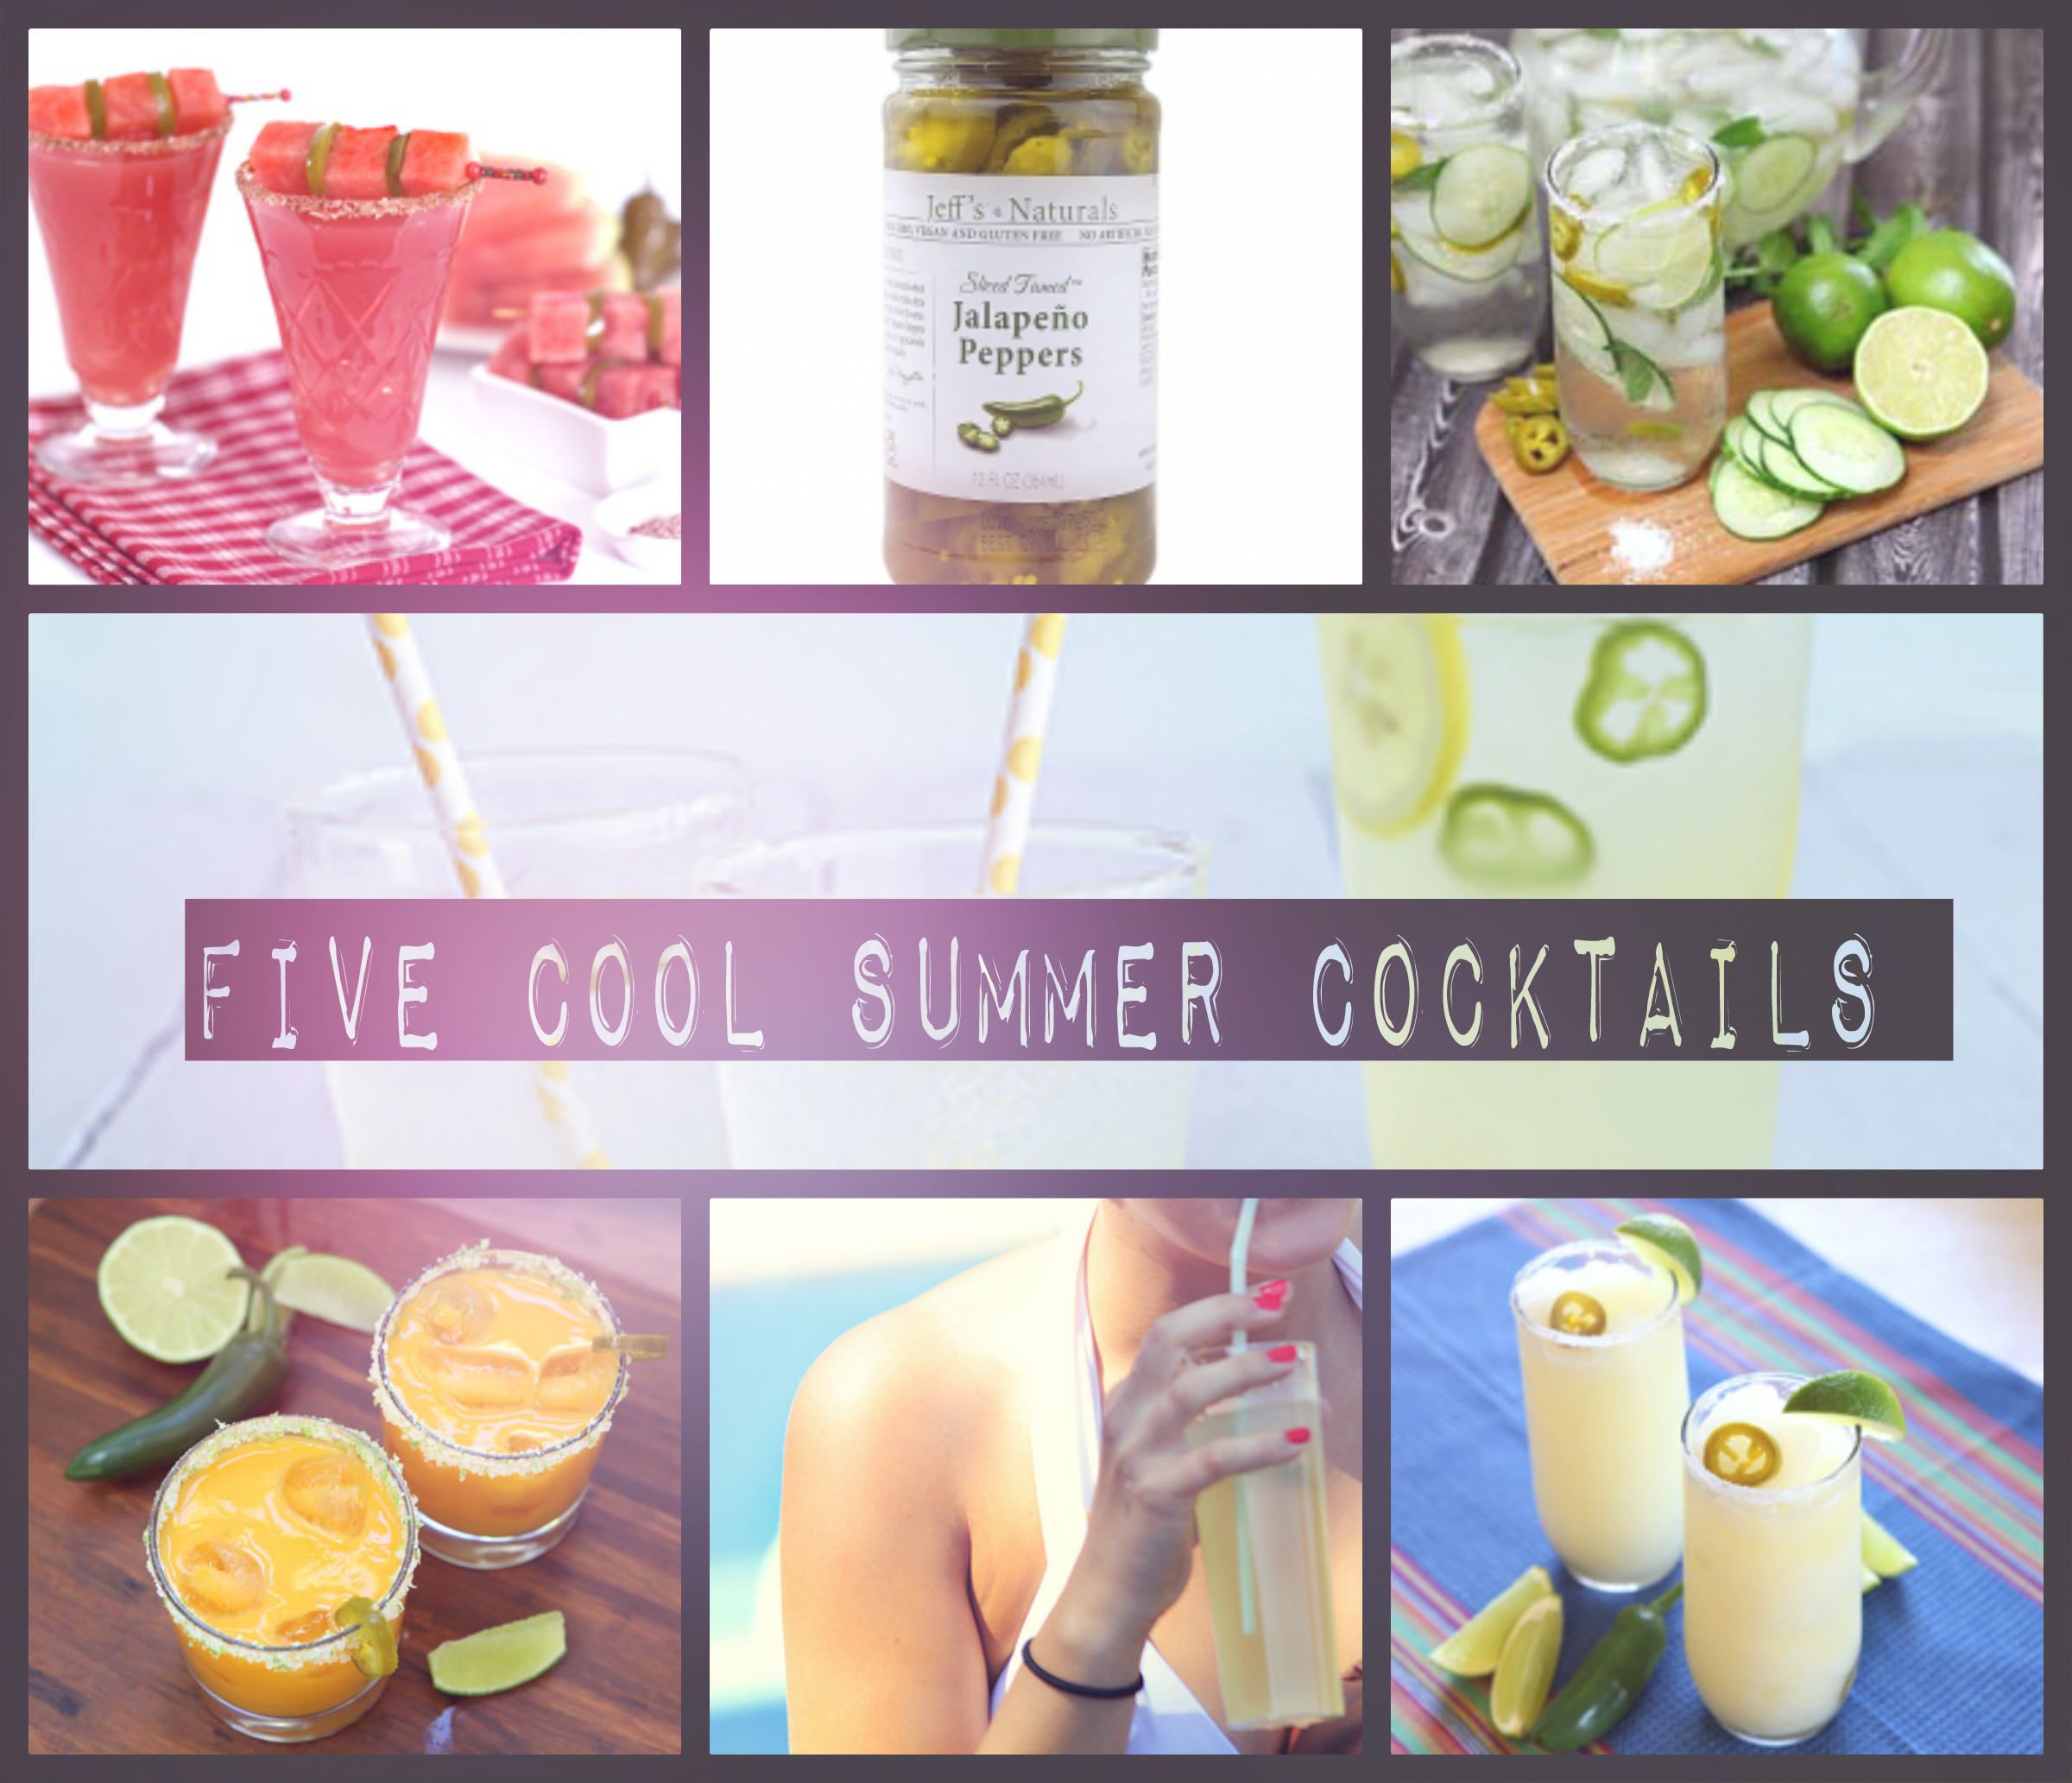 Five Cool Summer Cocktails